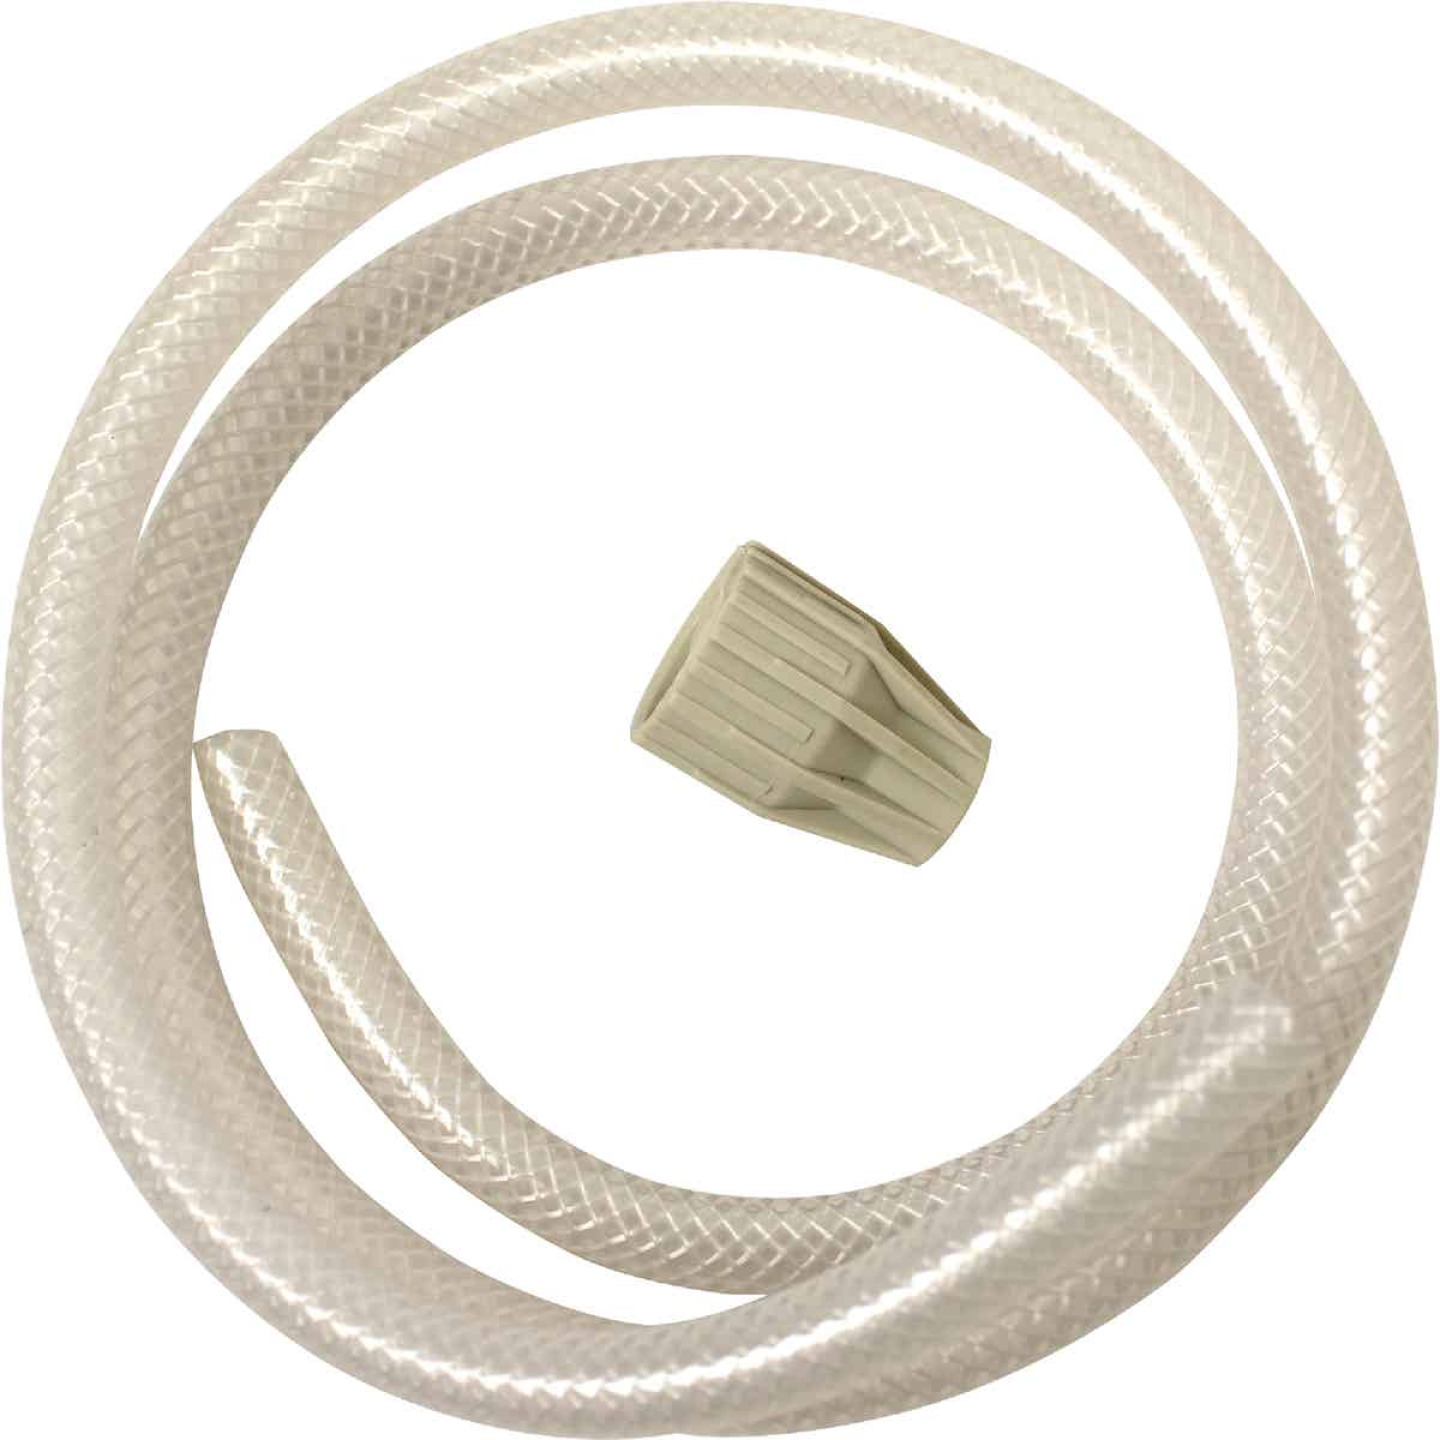 Chapin 34 In. Replacement Sprayer Hose Kit Image 2